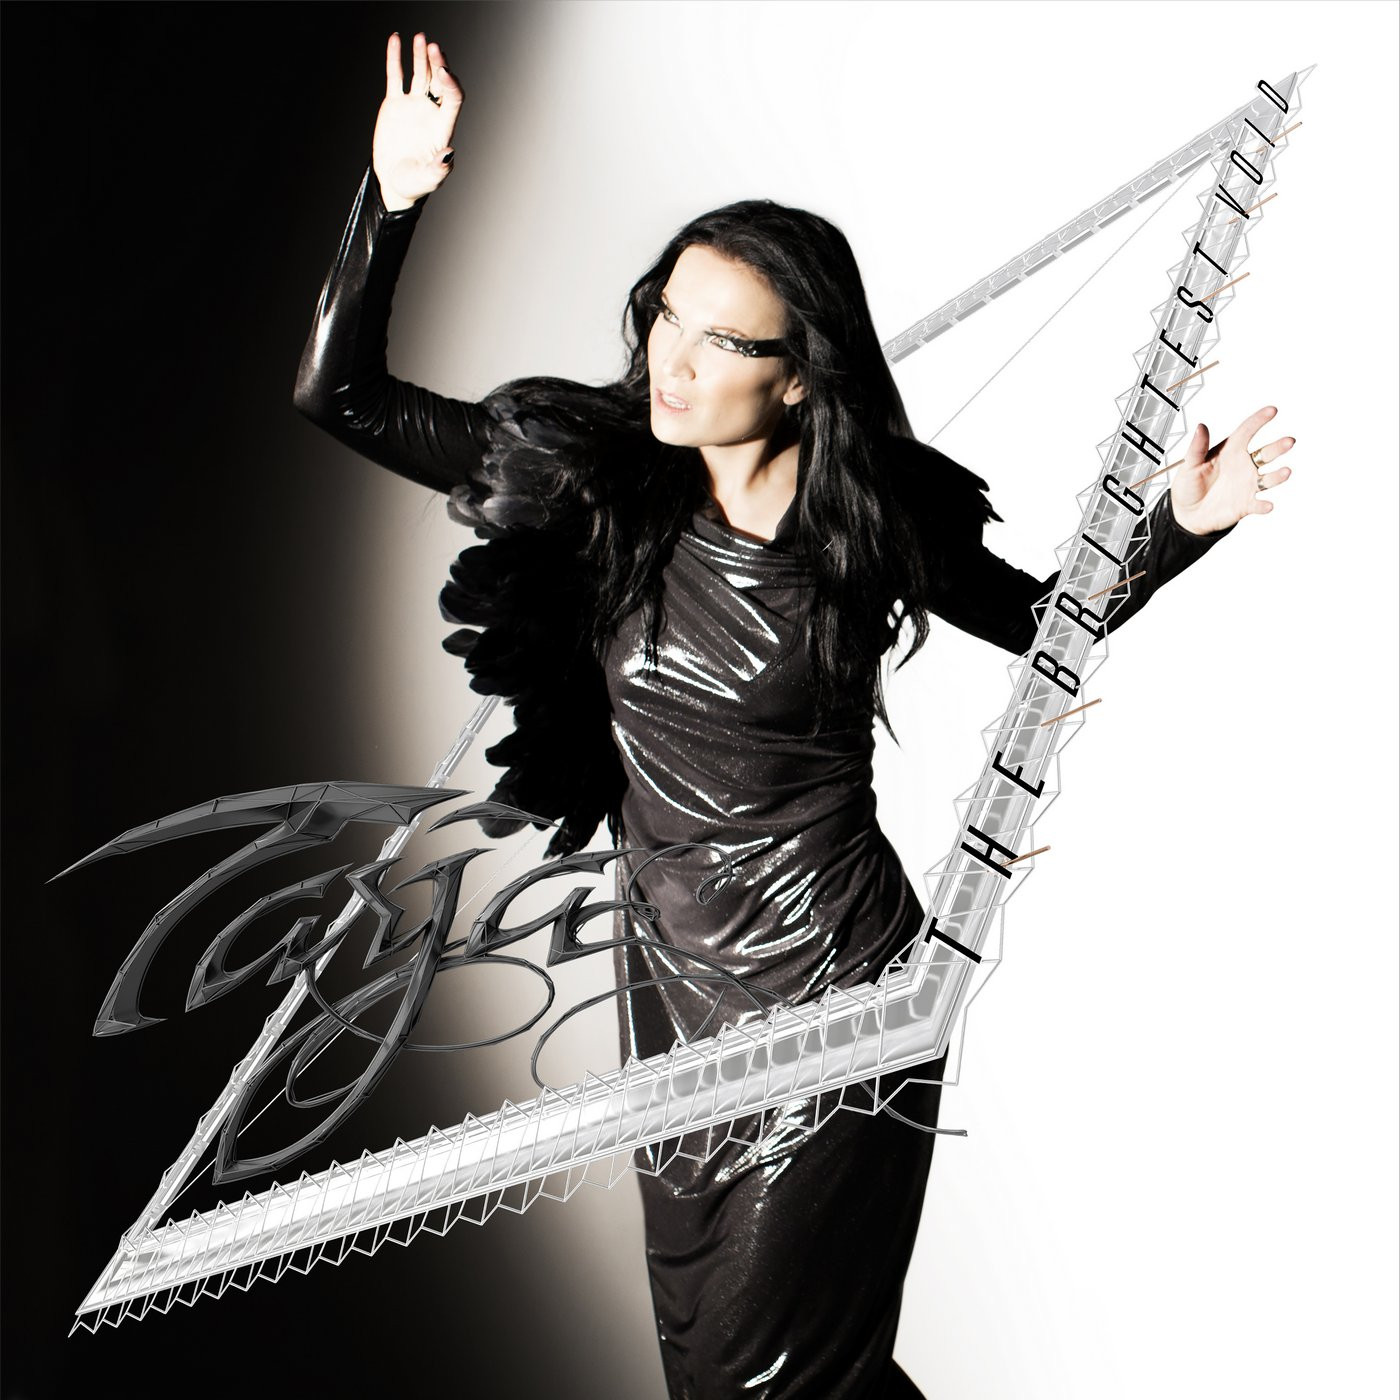 Tarja: The Brightest Void (2016) Book Cover